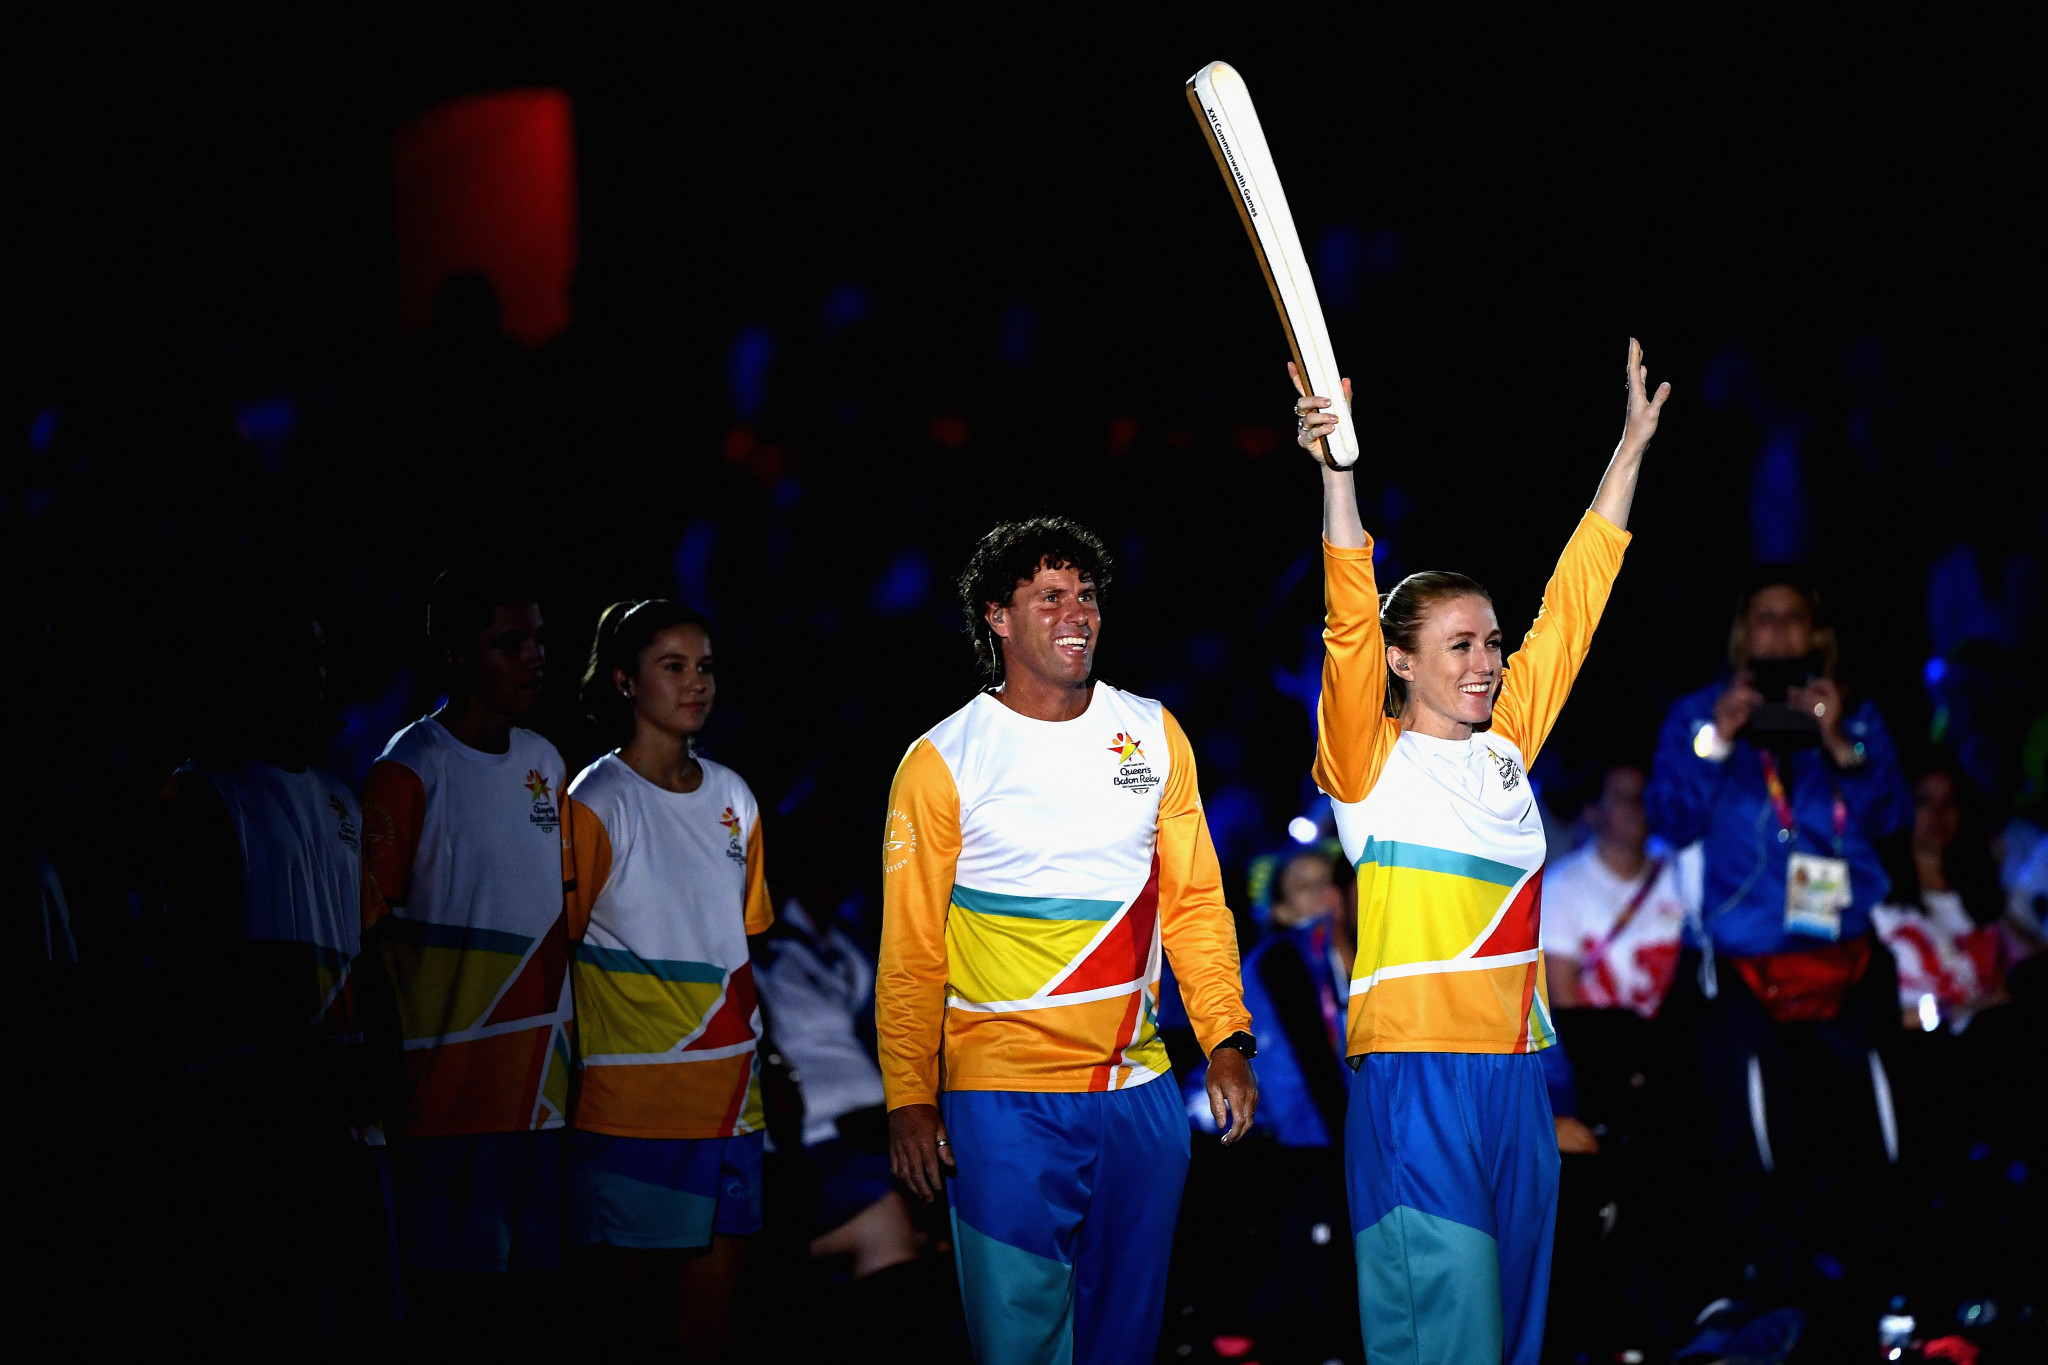 Sally Pearson carries The Queen's Baton during the Opening Ceremony for the Gold Coast 2018 Commonwealth Games ©Getty Images